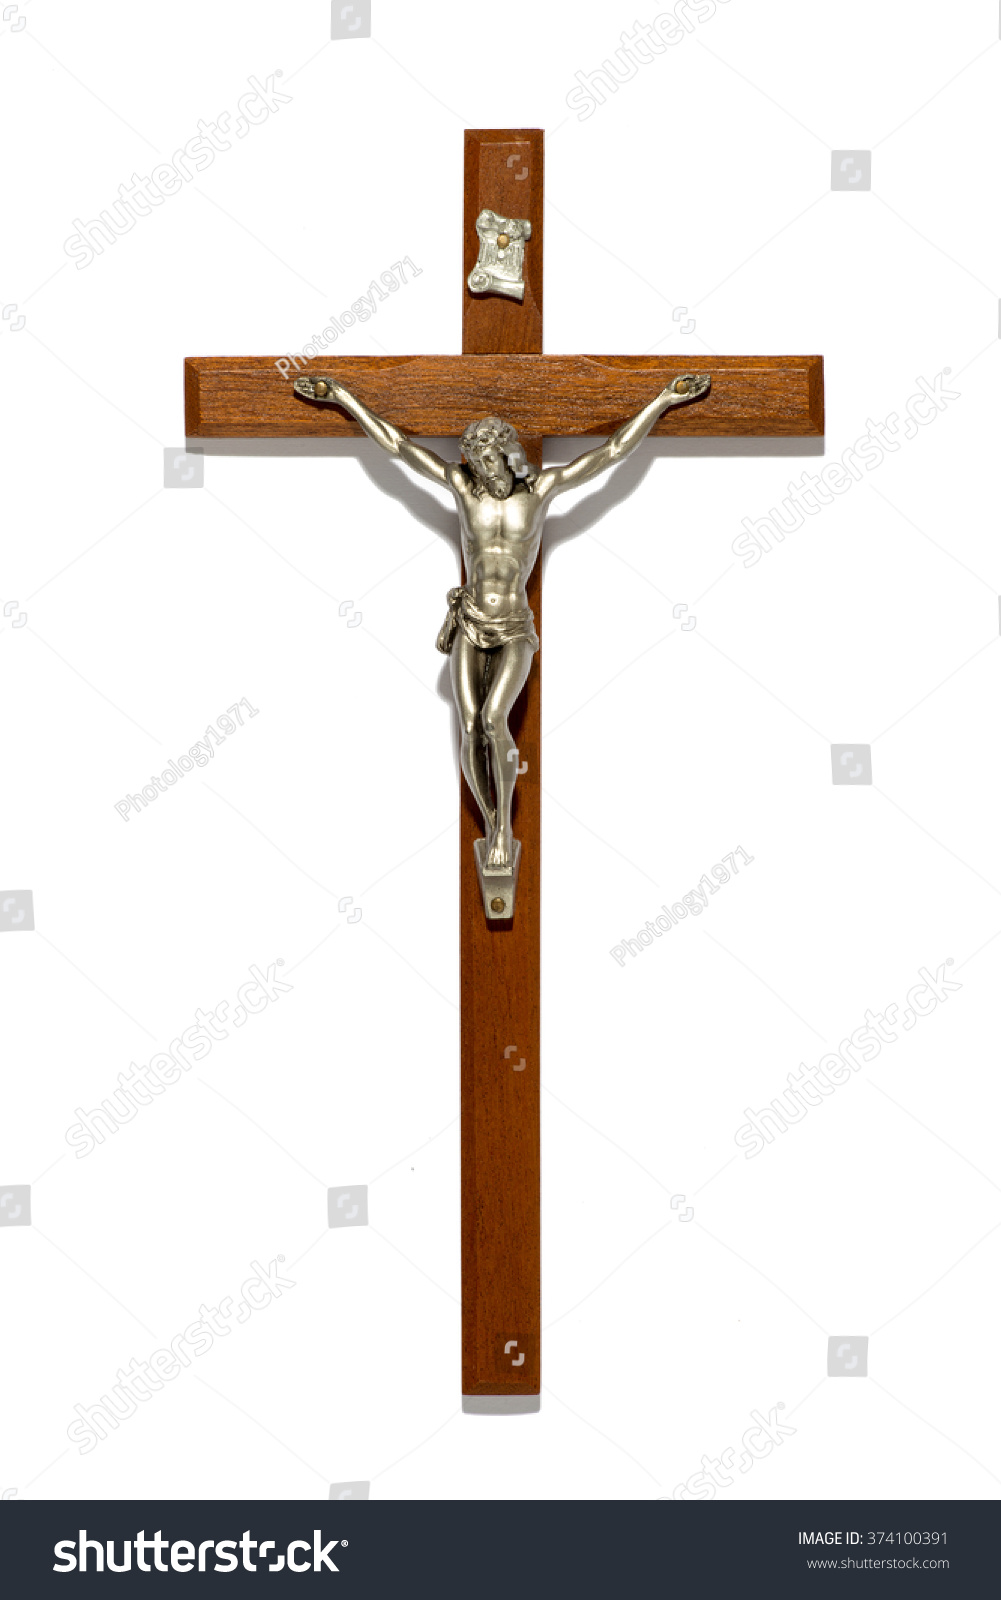 Plain wooden crucifix silver figure christ stock photo 374100391 plain wooden crucifix with silver figure of christ a religious and spiritual symbol of the biocorpaavc